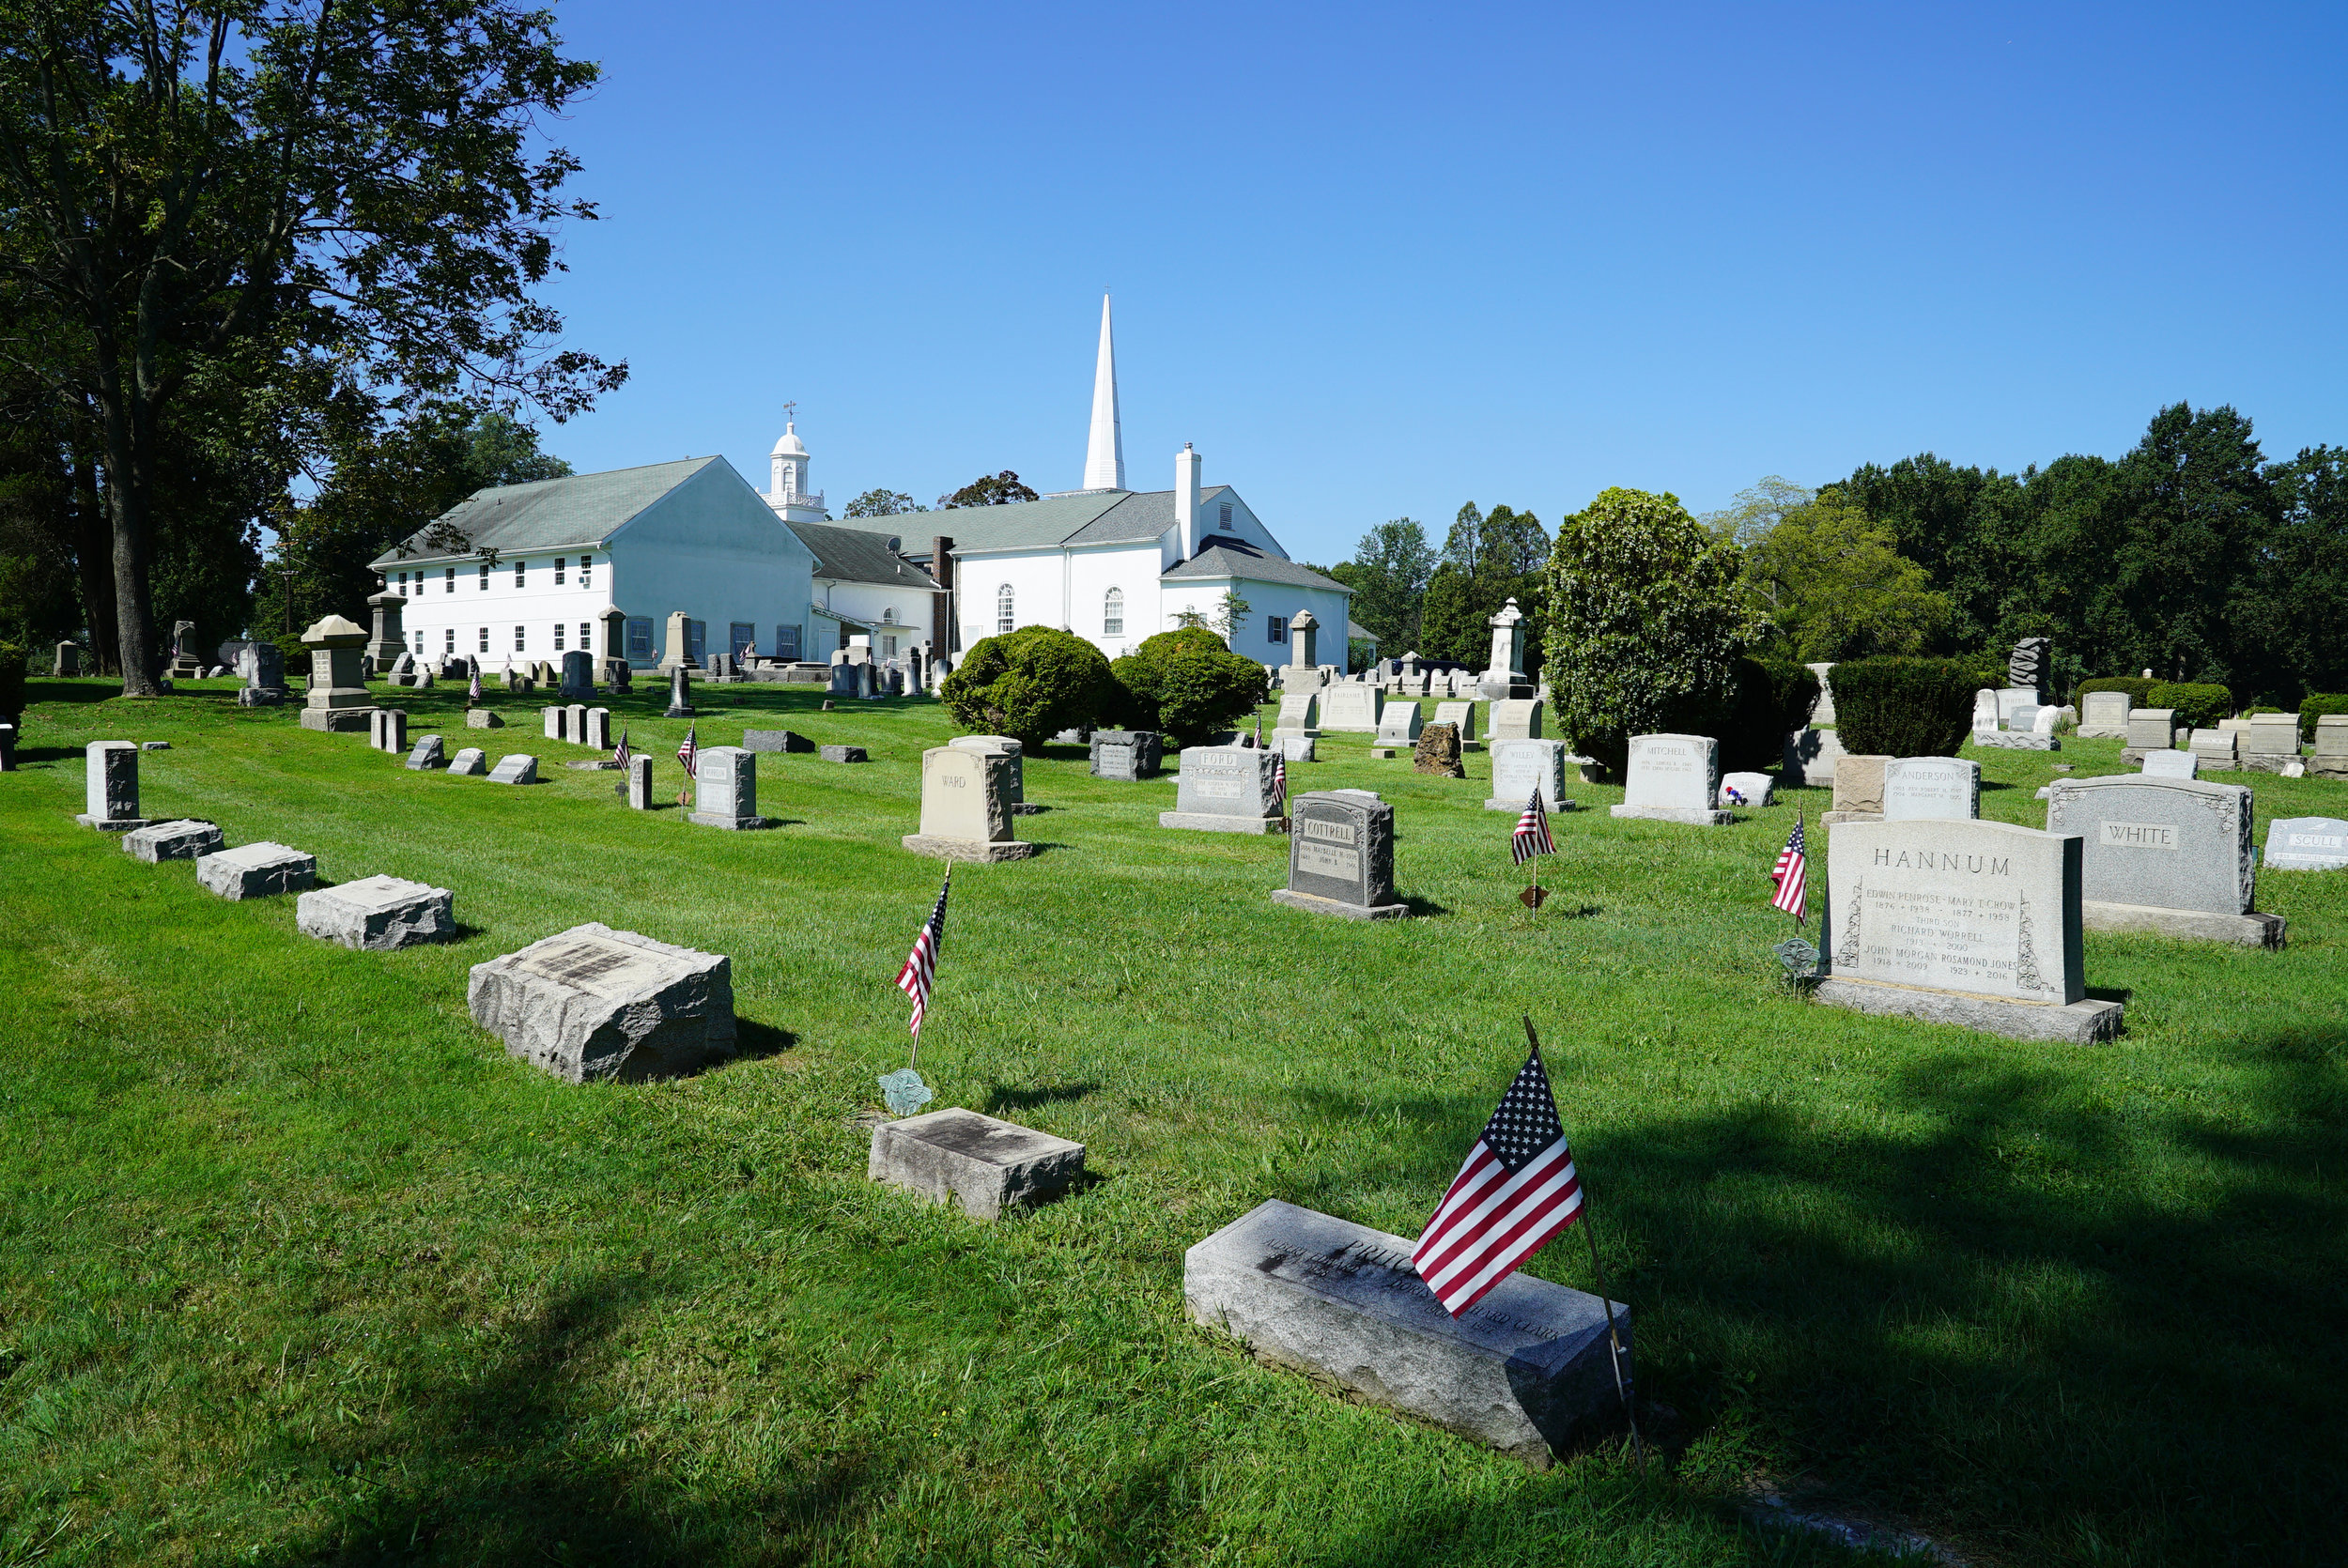 middletown presbyterian church cemetery.jpg